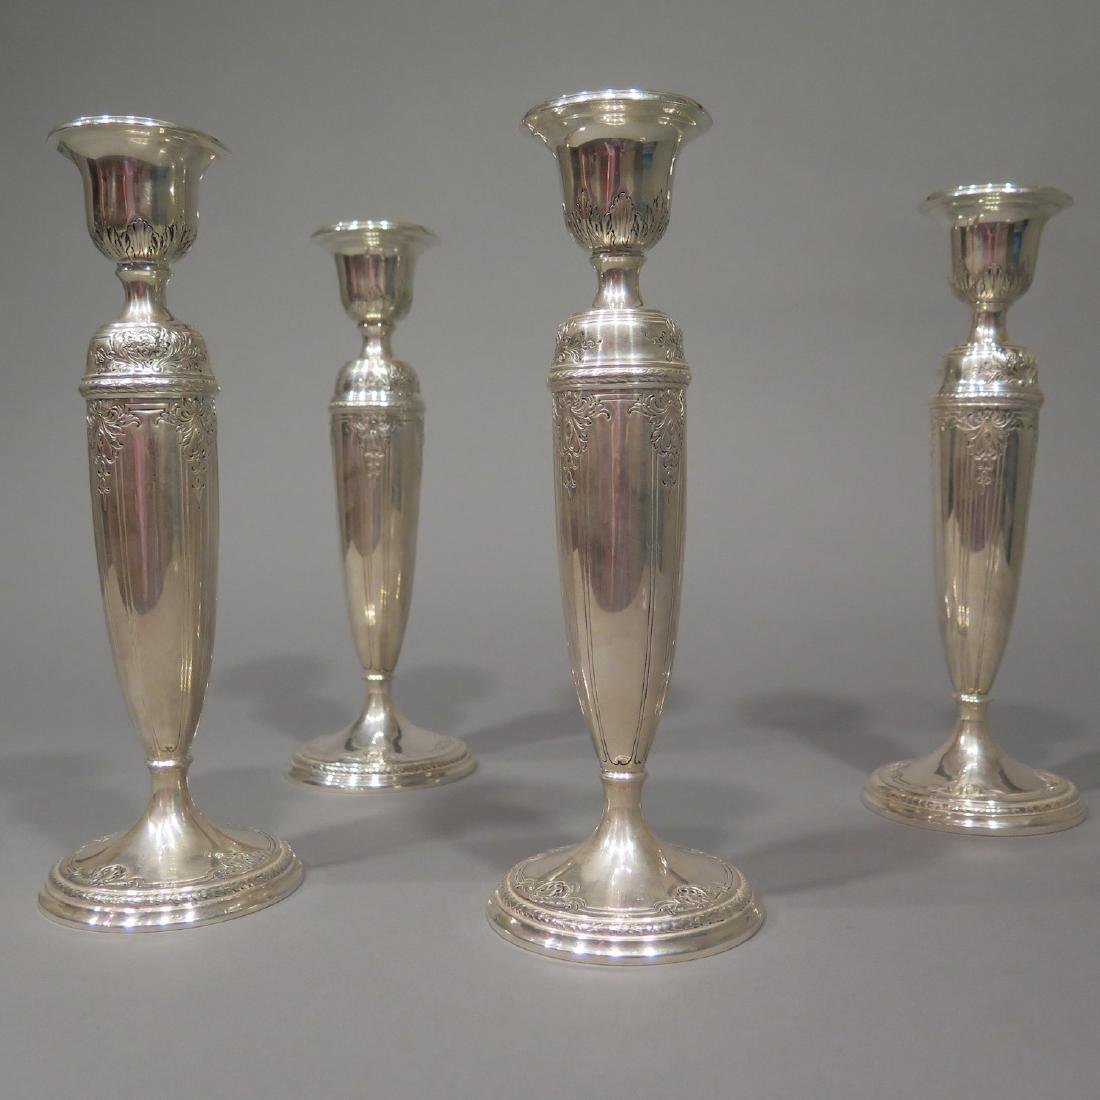 4 Sterling Silver Candlesticks - 3